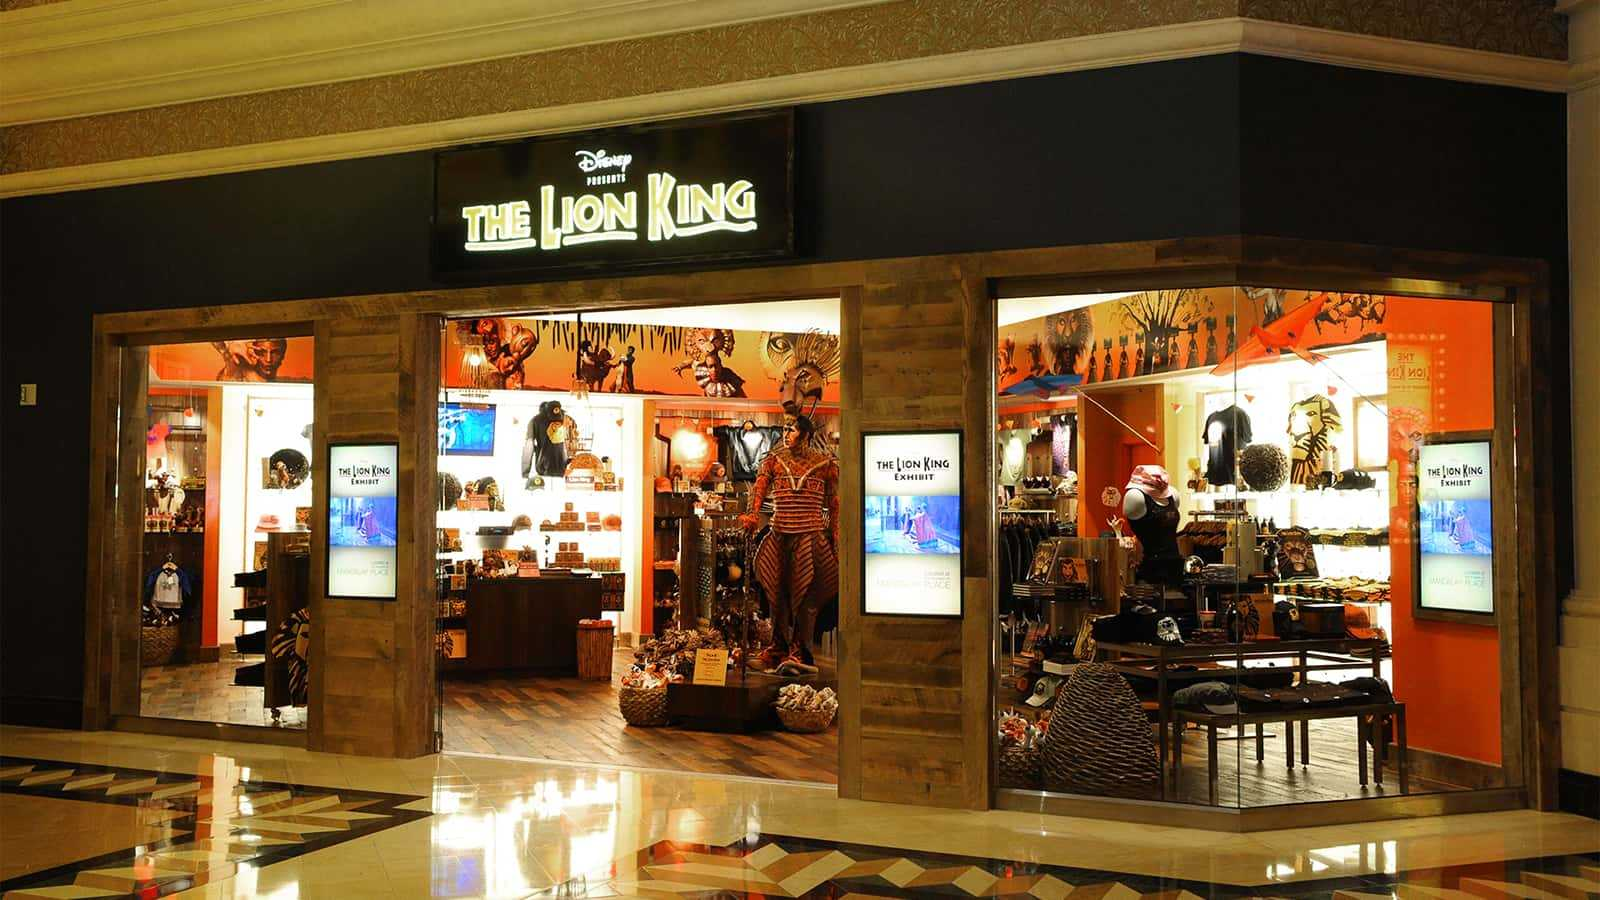 The entrance of the Mandalay Bay Lion King Theater Store.